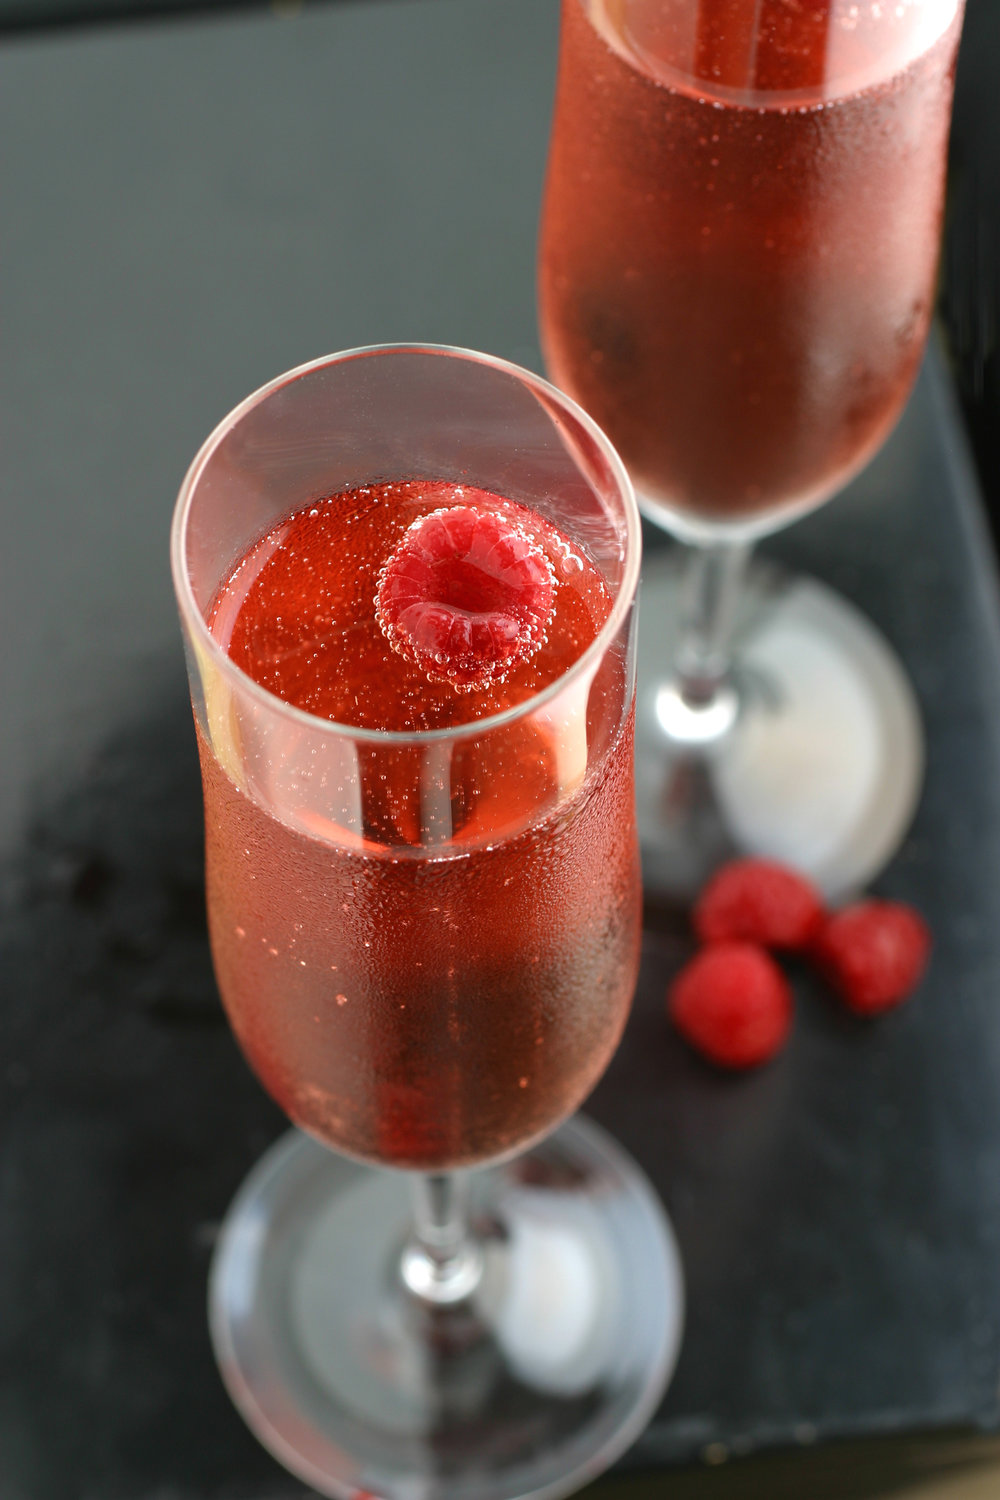 Pink-Champagne-with-Raspberry-182146074_2048x3072.jpeg